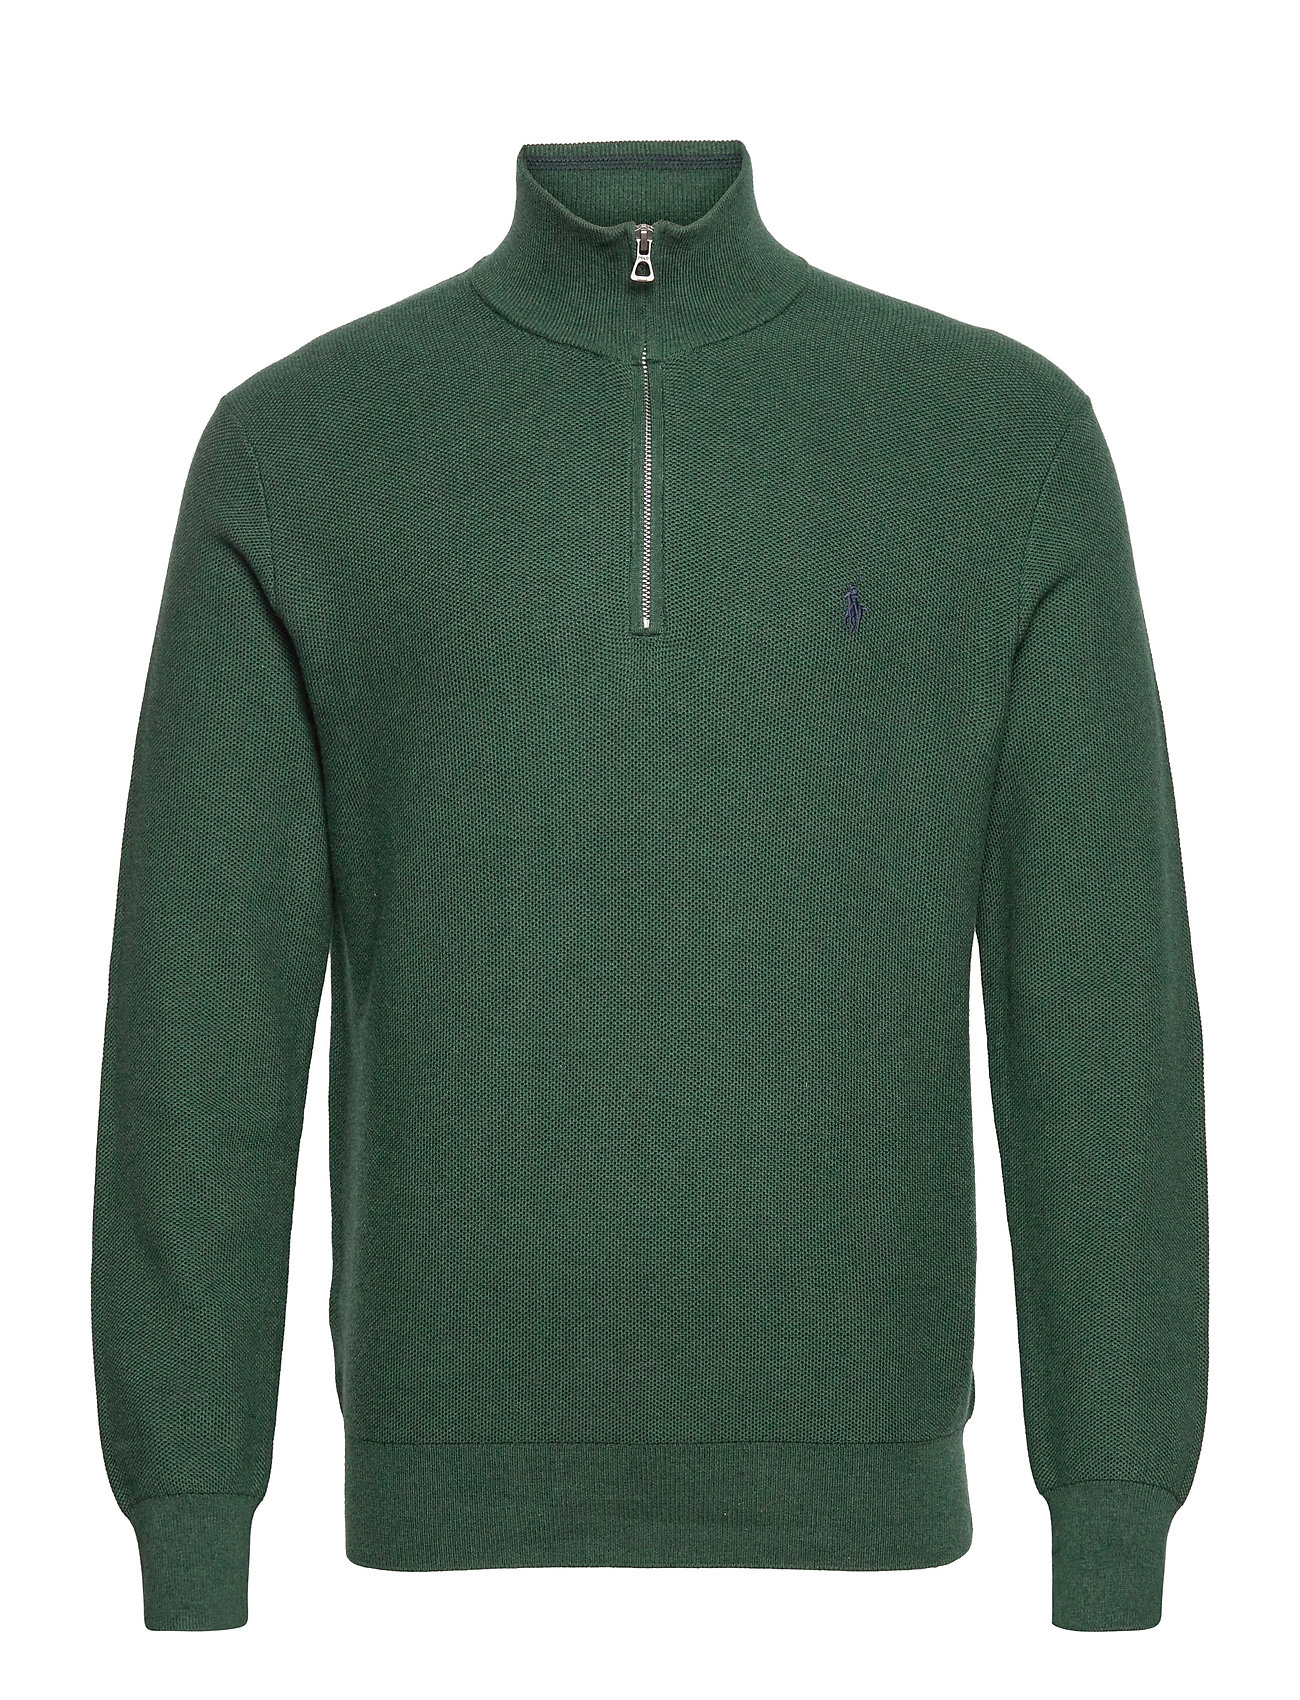 Polo Ralph Lauren Cotton Half-Zip Sweater - SCOTCH PINE HEATH